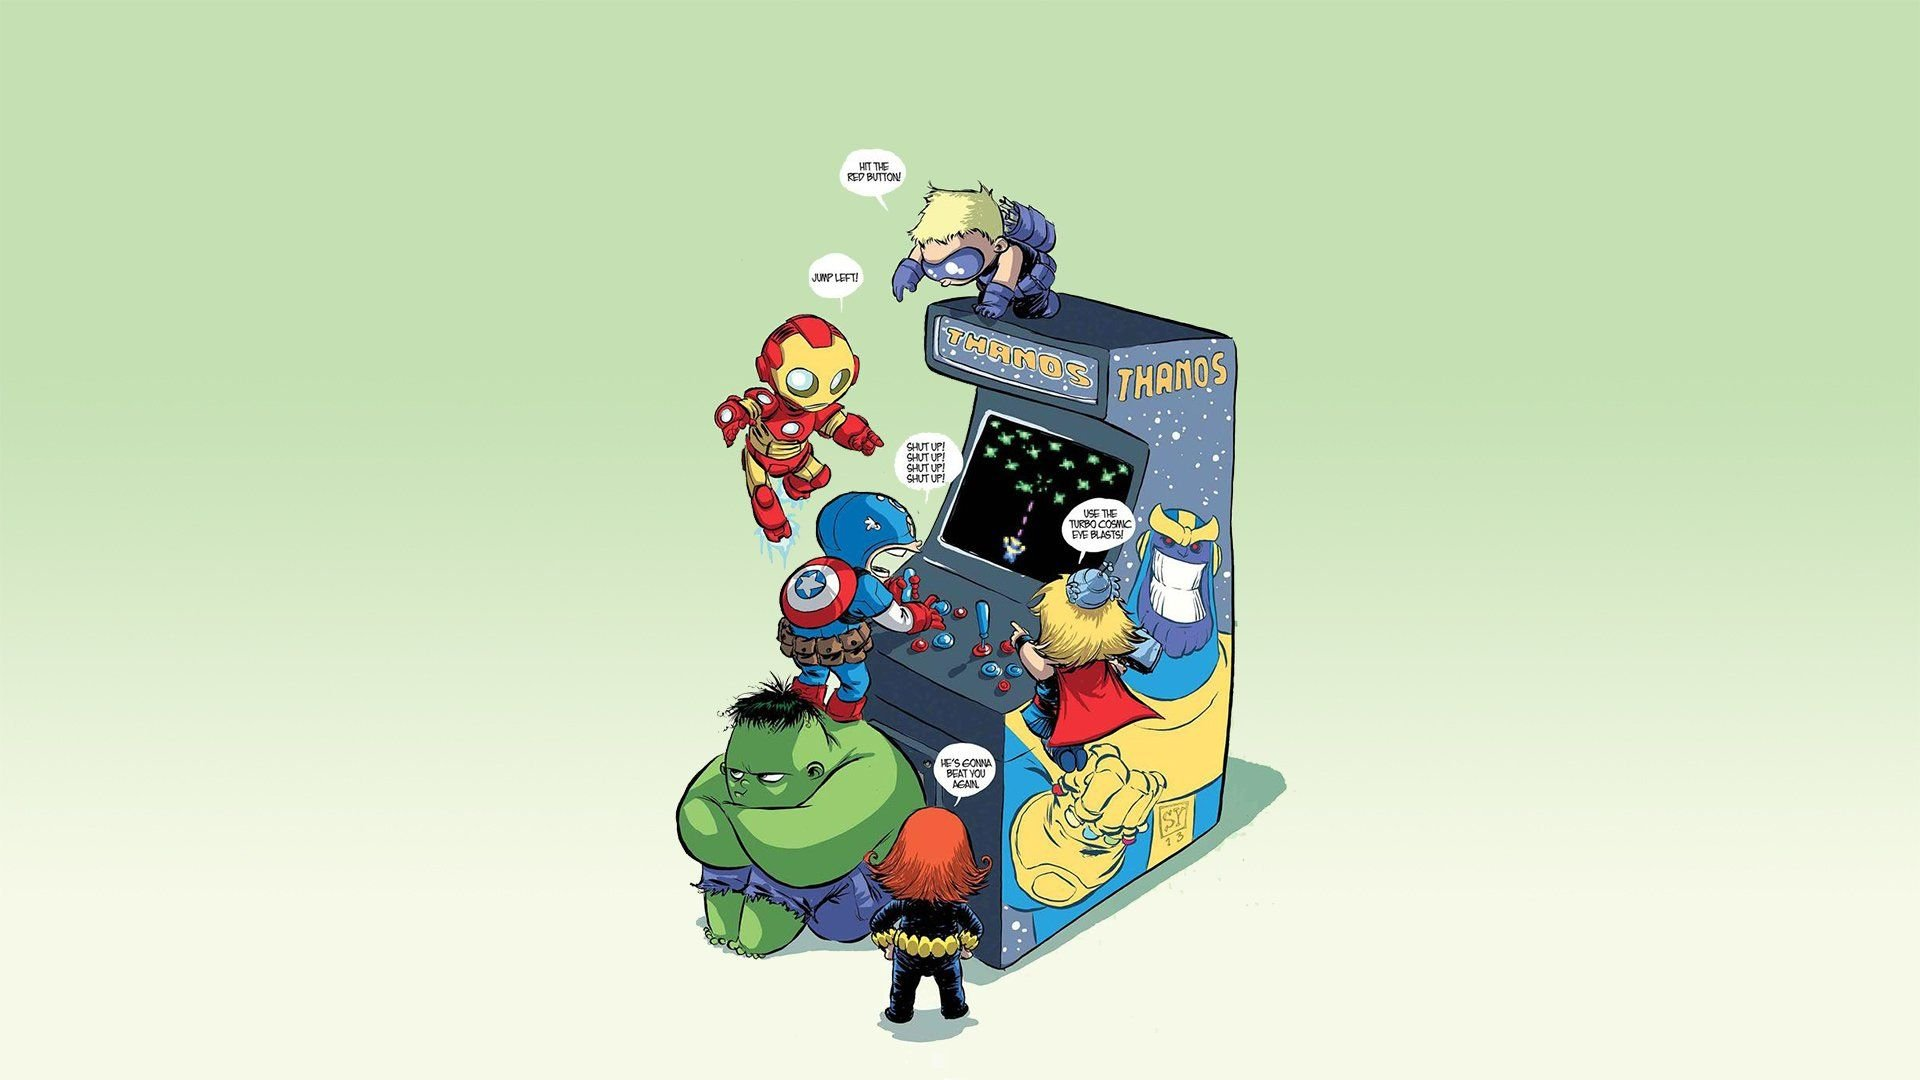 Funny Avengers Wallpapers Top Free Funny Avengers